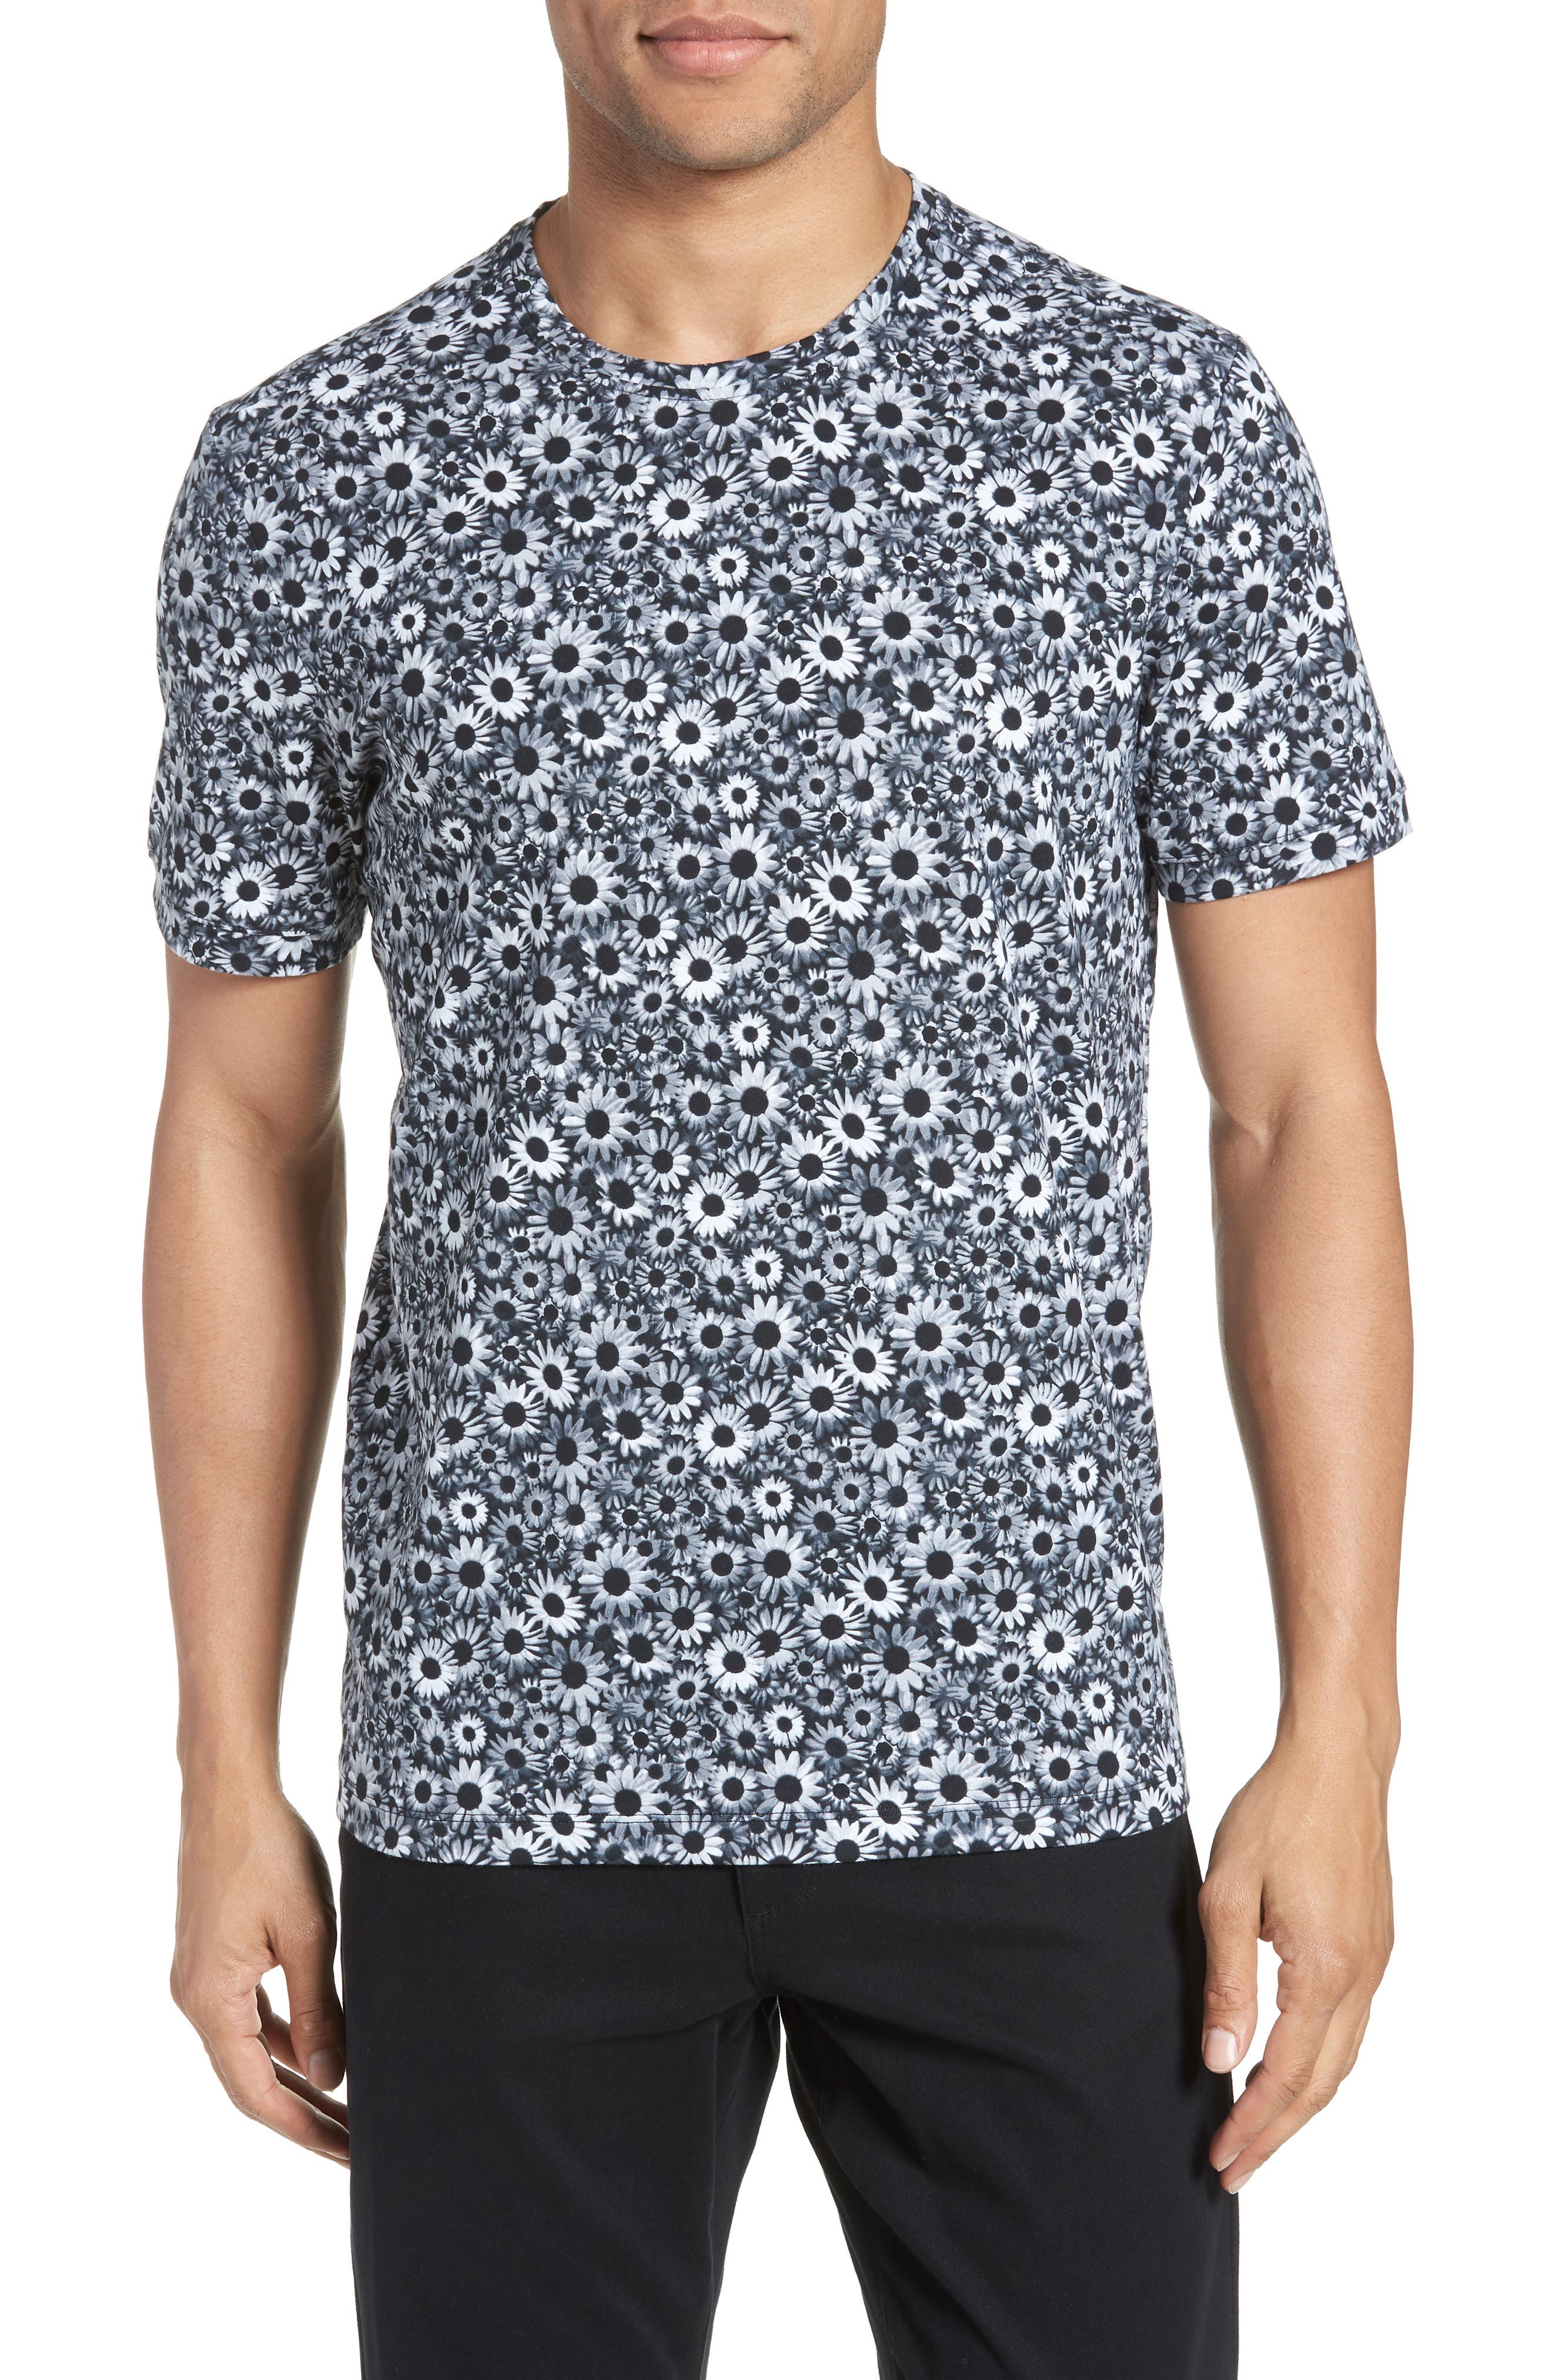 Print T-Shirt,                             Main thumbnail 1, color,                             Black White Daisy Floral